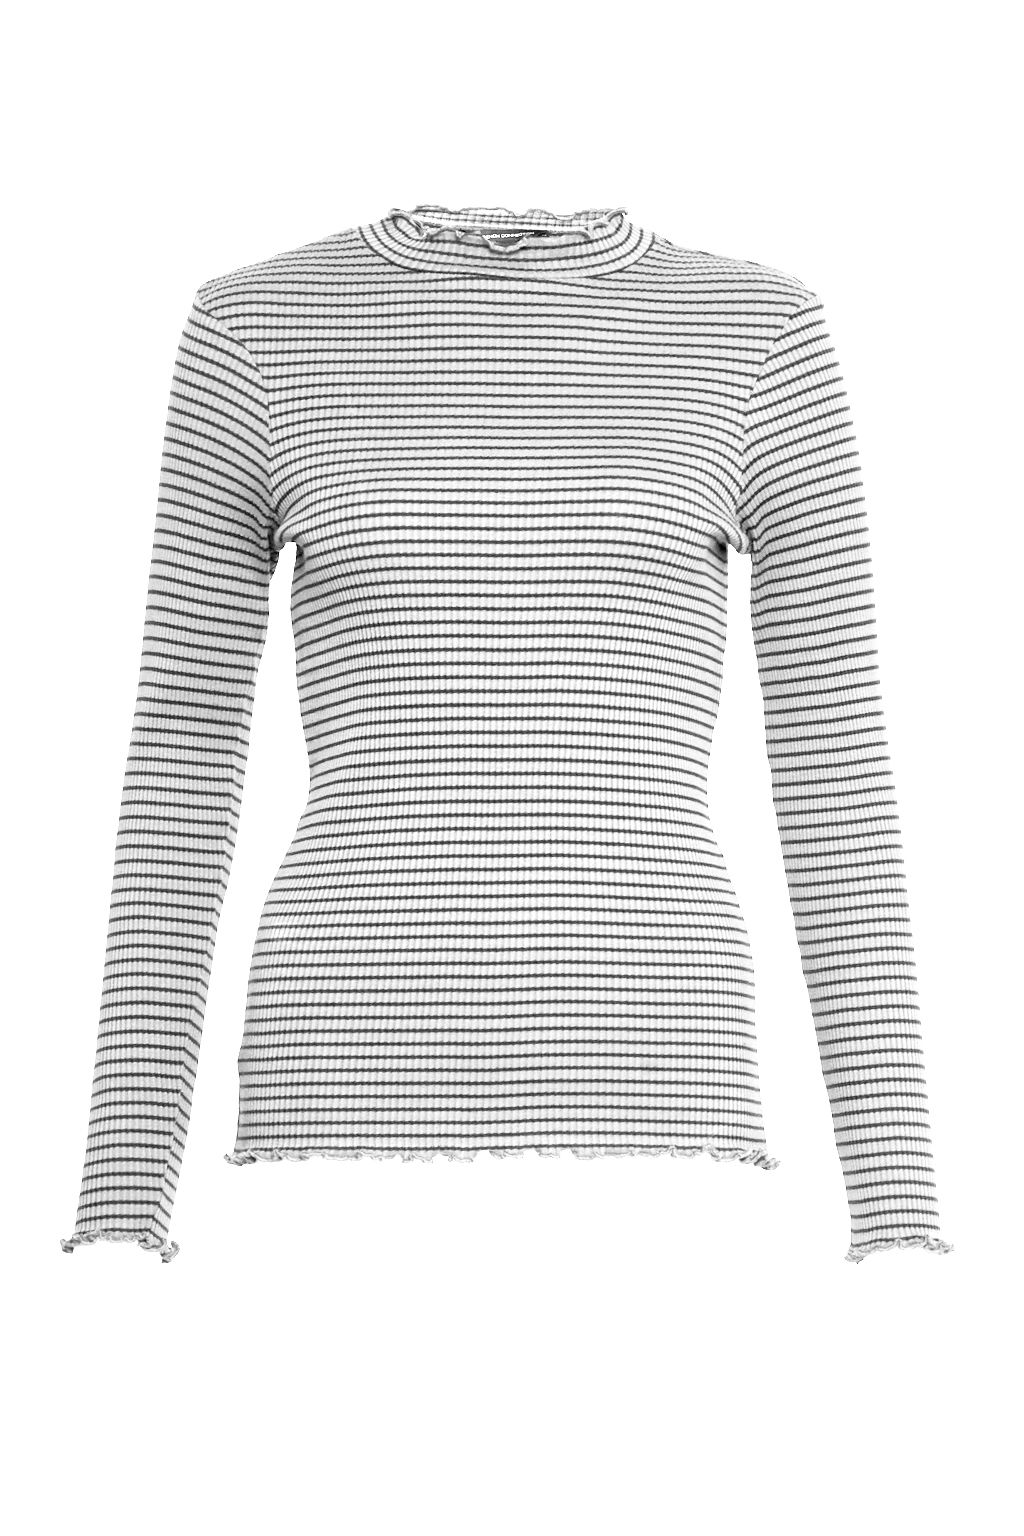 French Connection Tim Tim Ribbed Striped Top, Cream